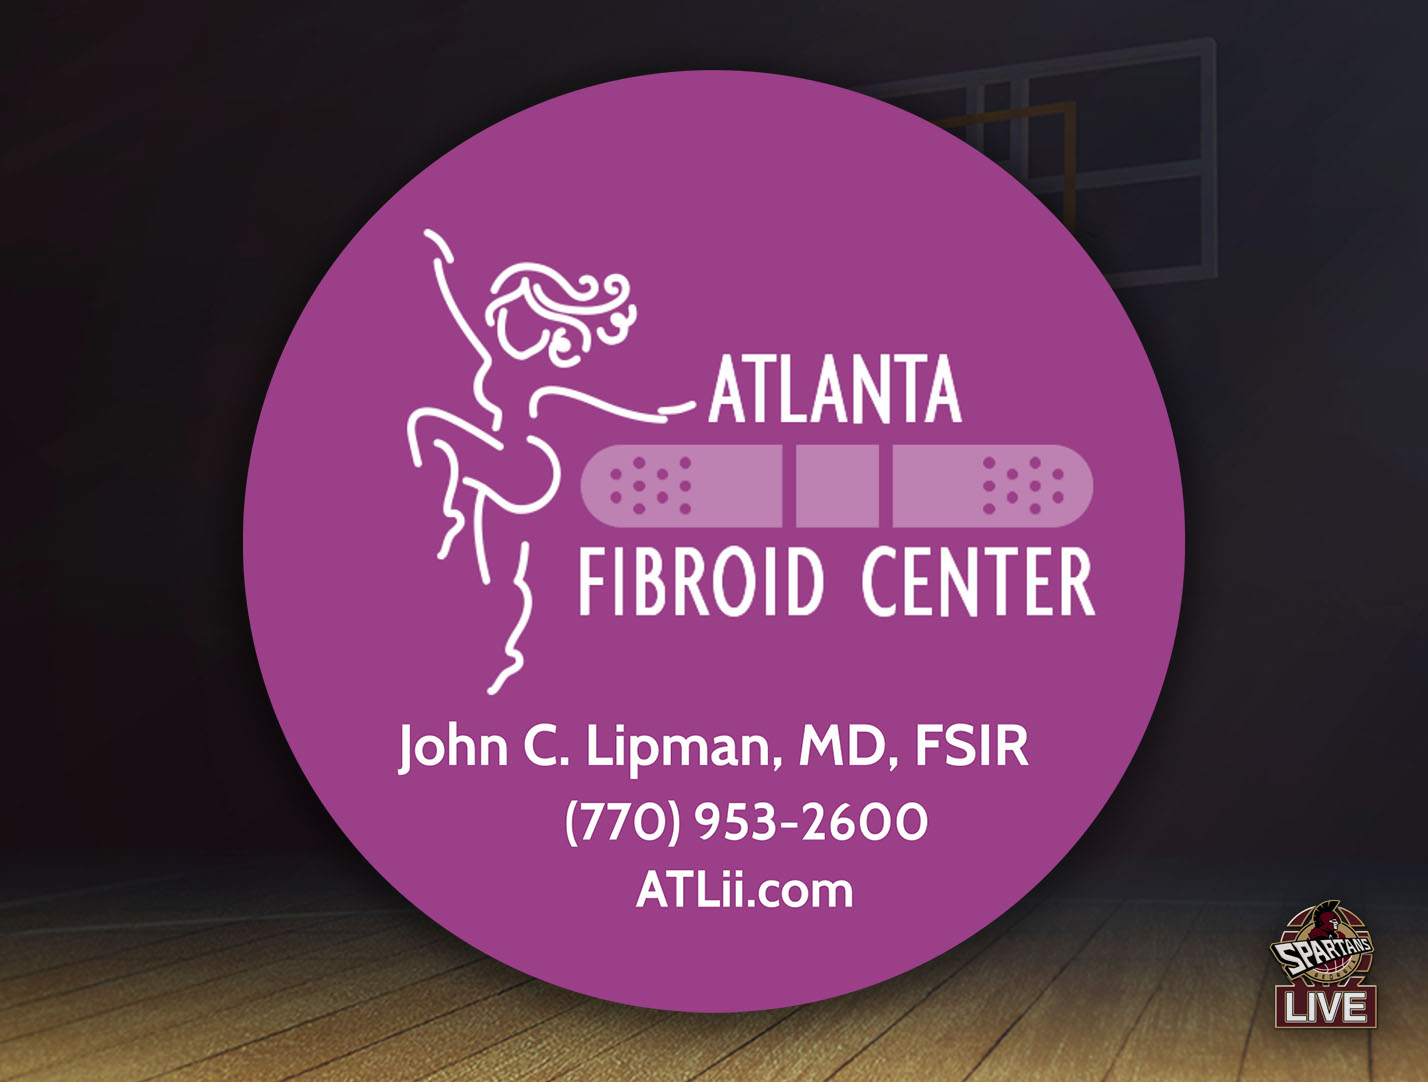 Atlanta Fibroid Center Georgia Spartans Team Sponsor